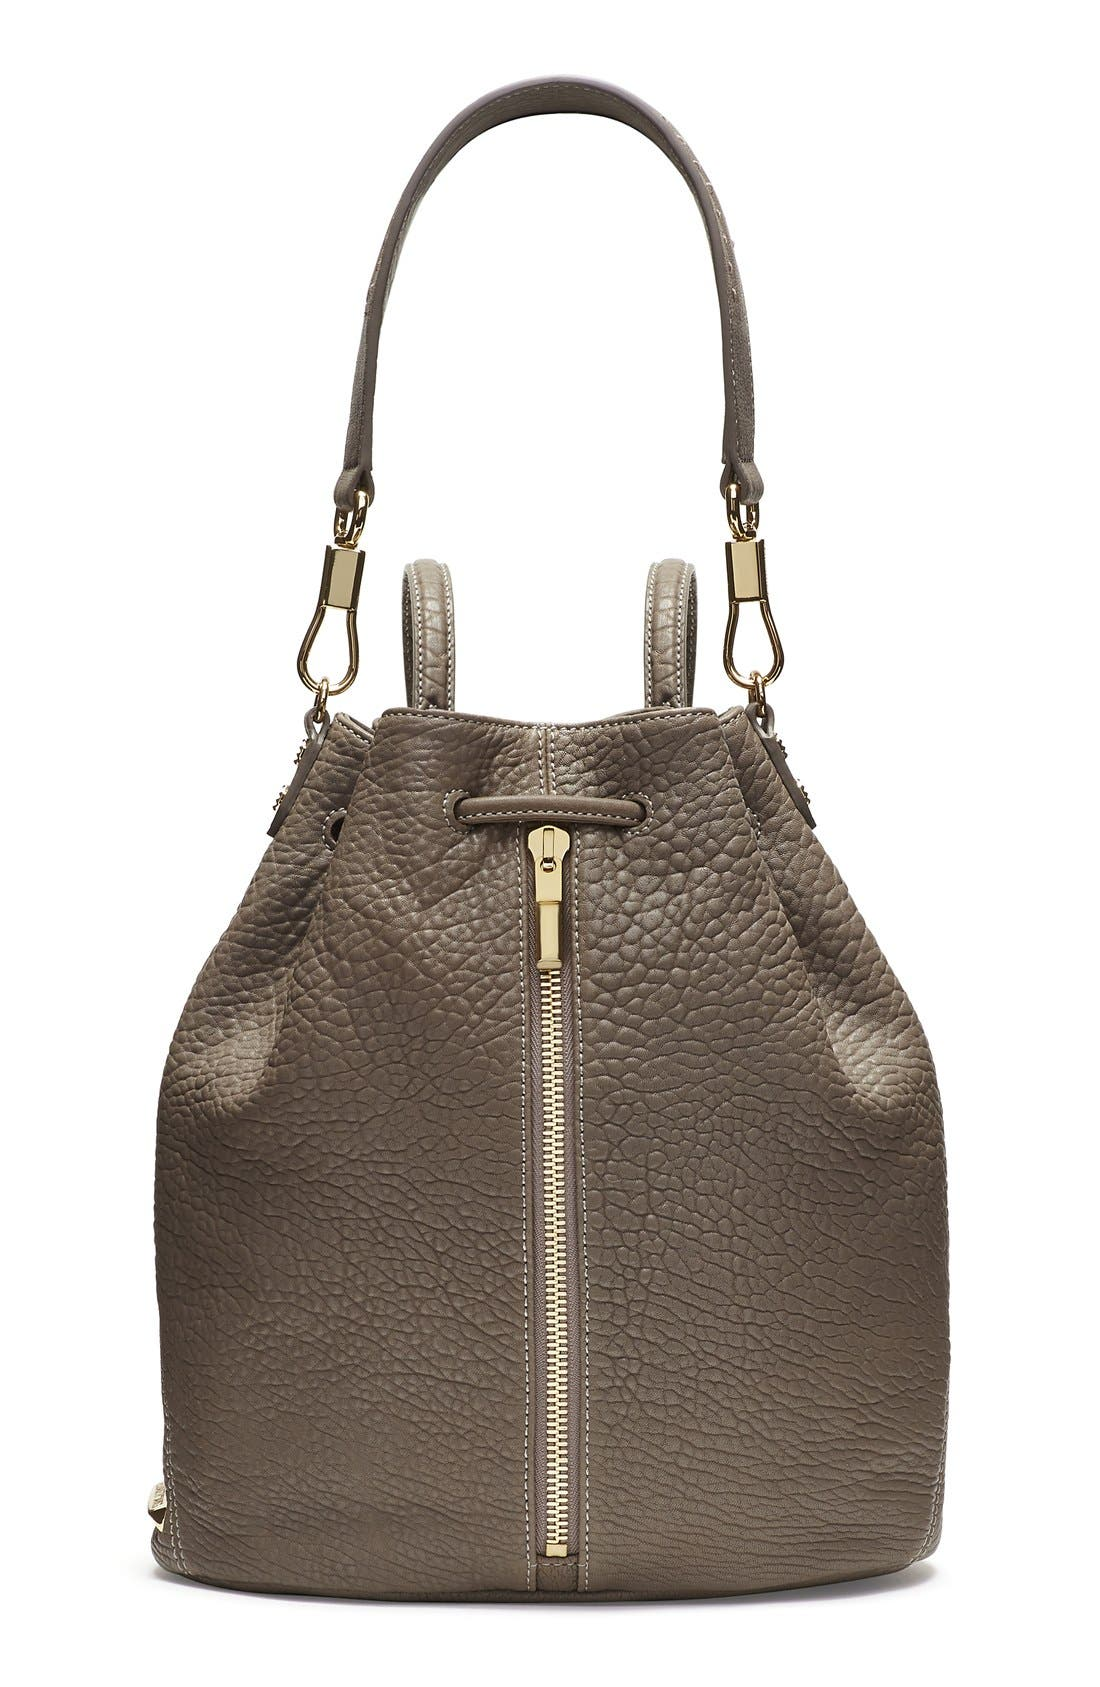 ELIZABETH AND JAMES 'Cynnie' Leather Sling Backpack